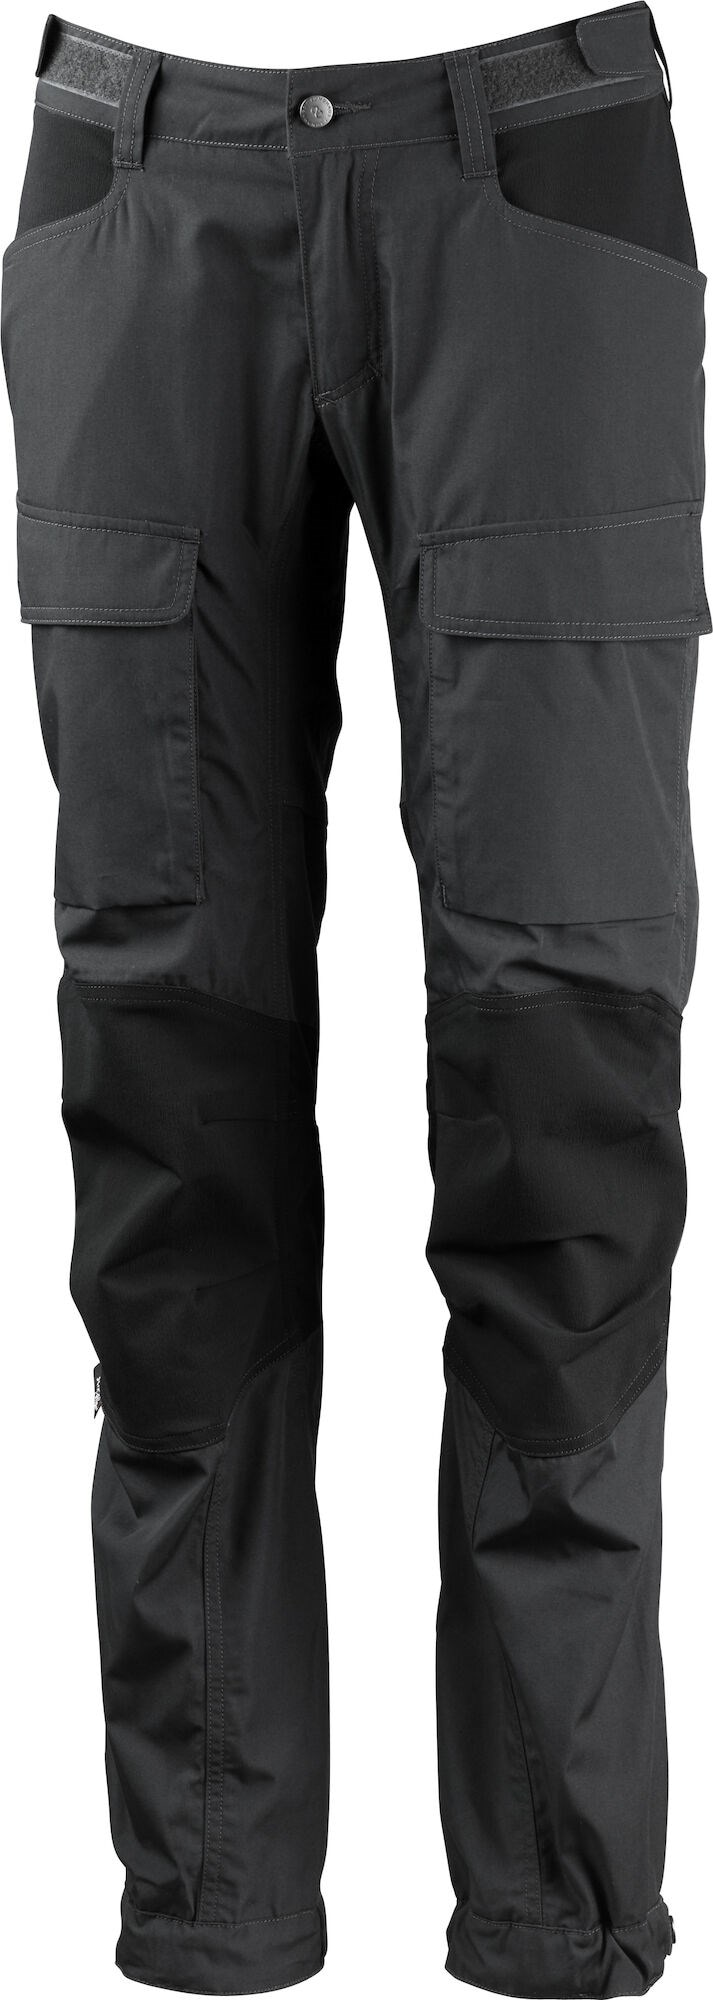 Lundhags Authentic II Pants W's